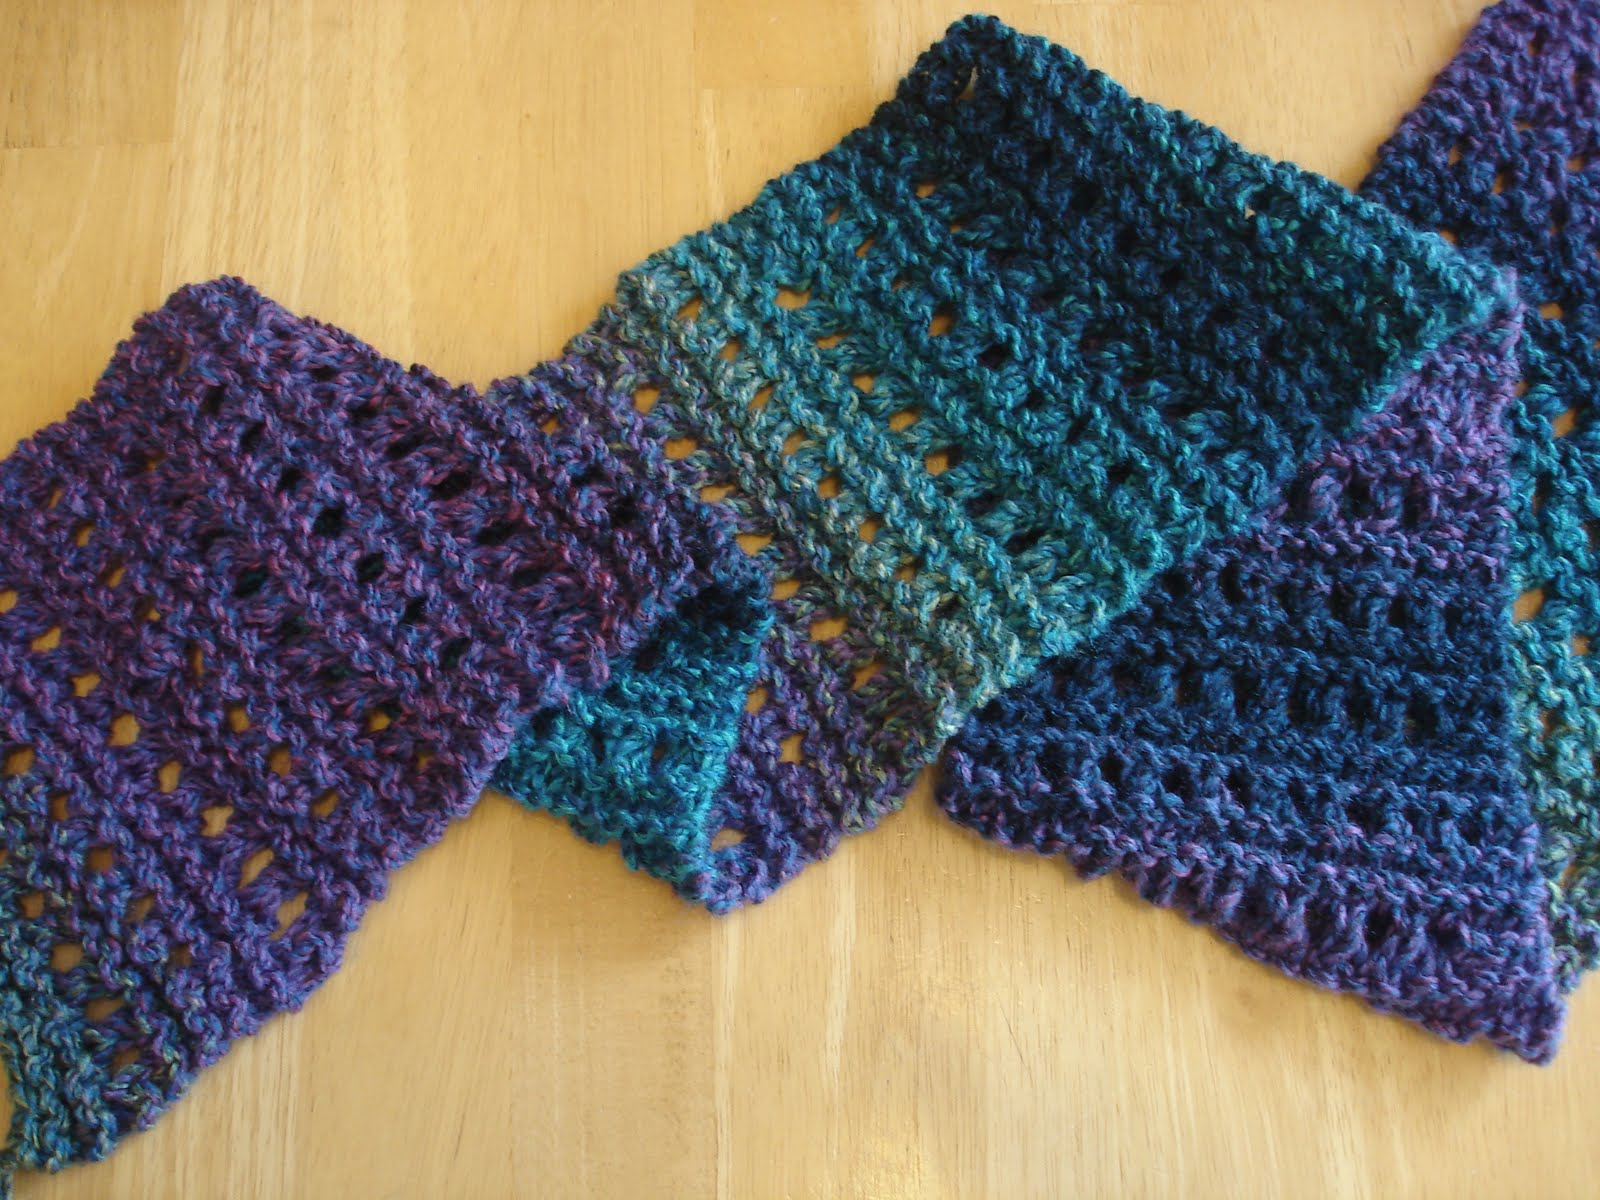 Free Knitting Patterns For Scarves Easy : Fiber Flux: Free Knitting Pattern: Tweedy Eyelet Scarf!